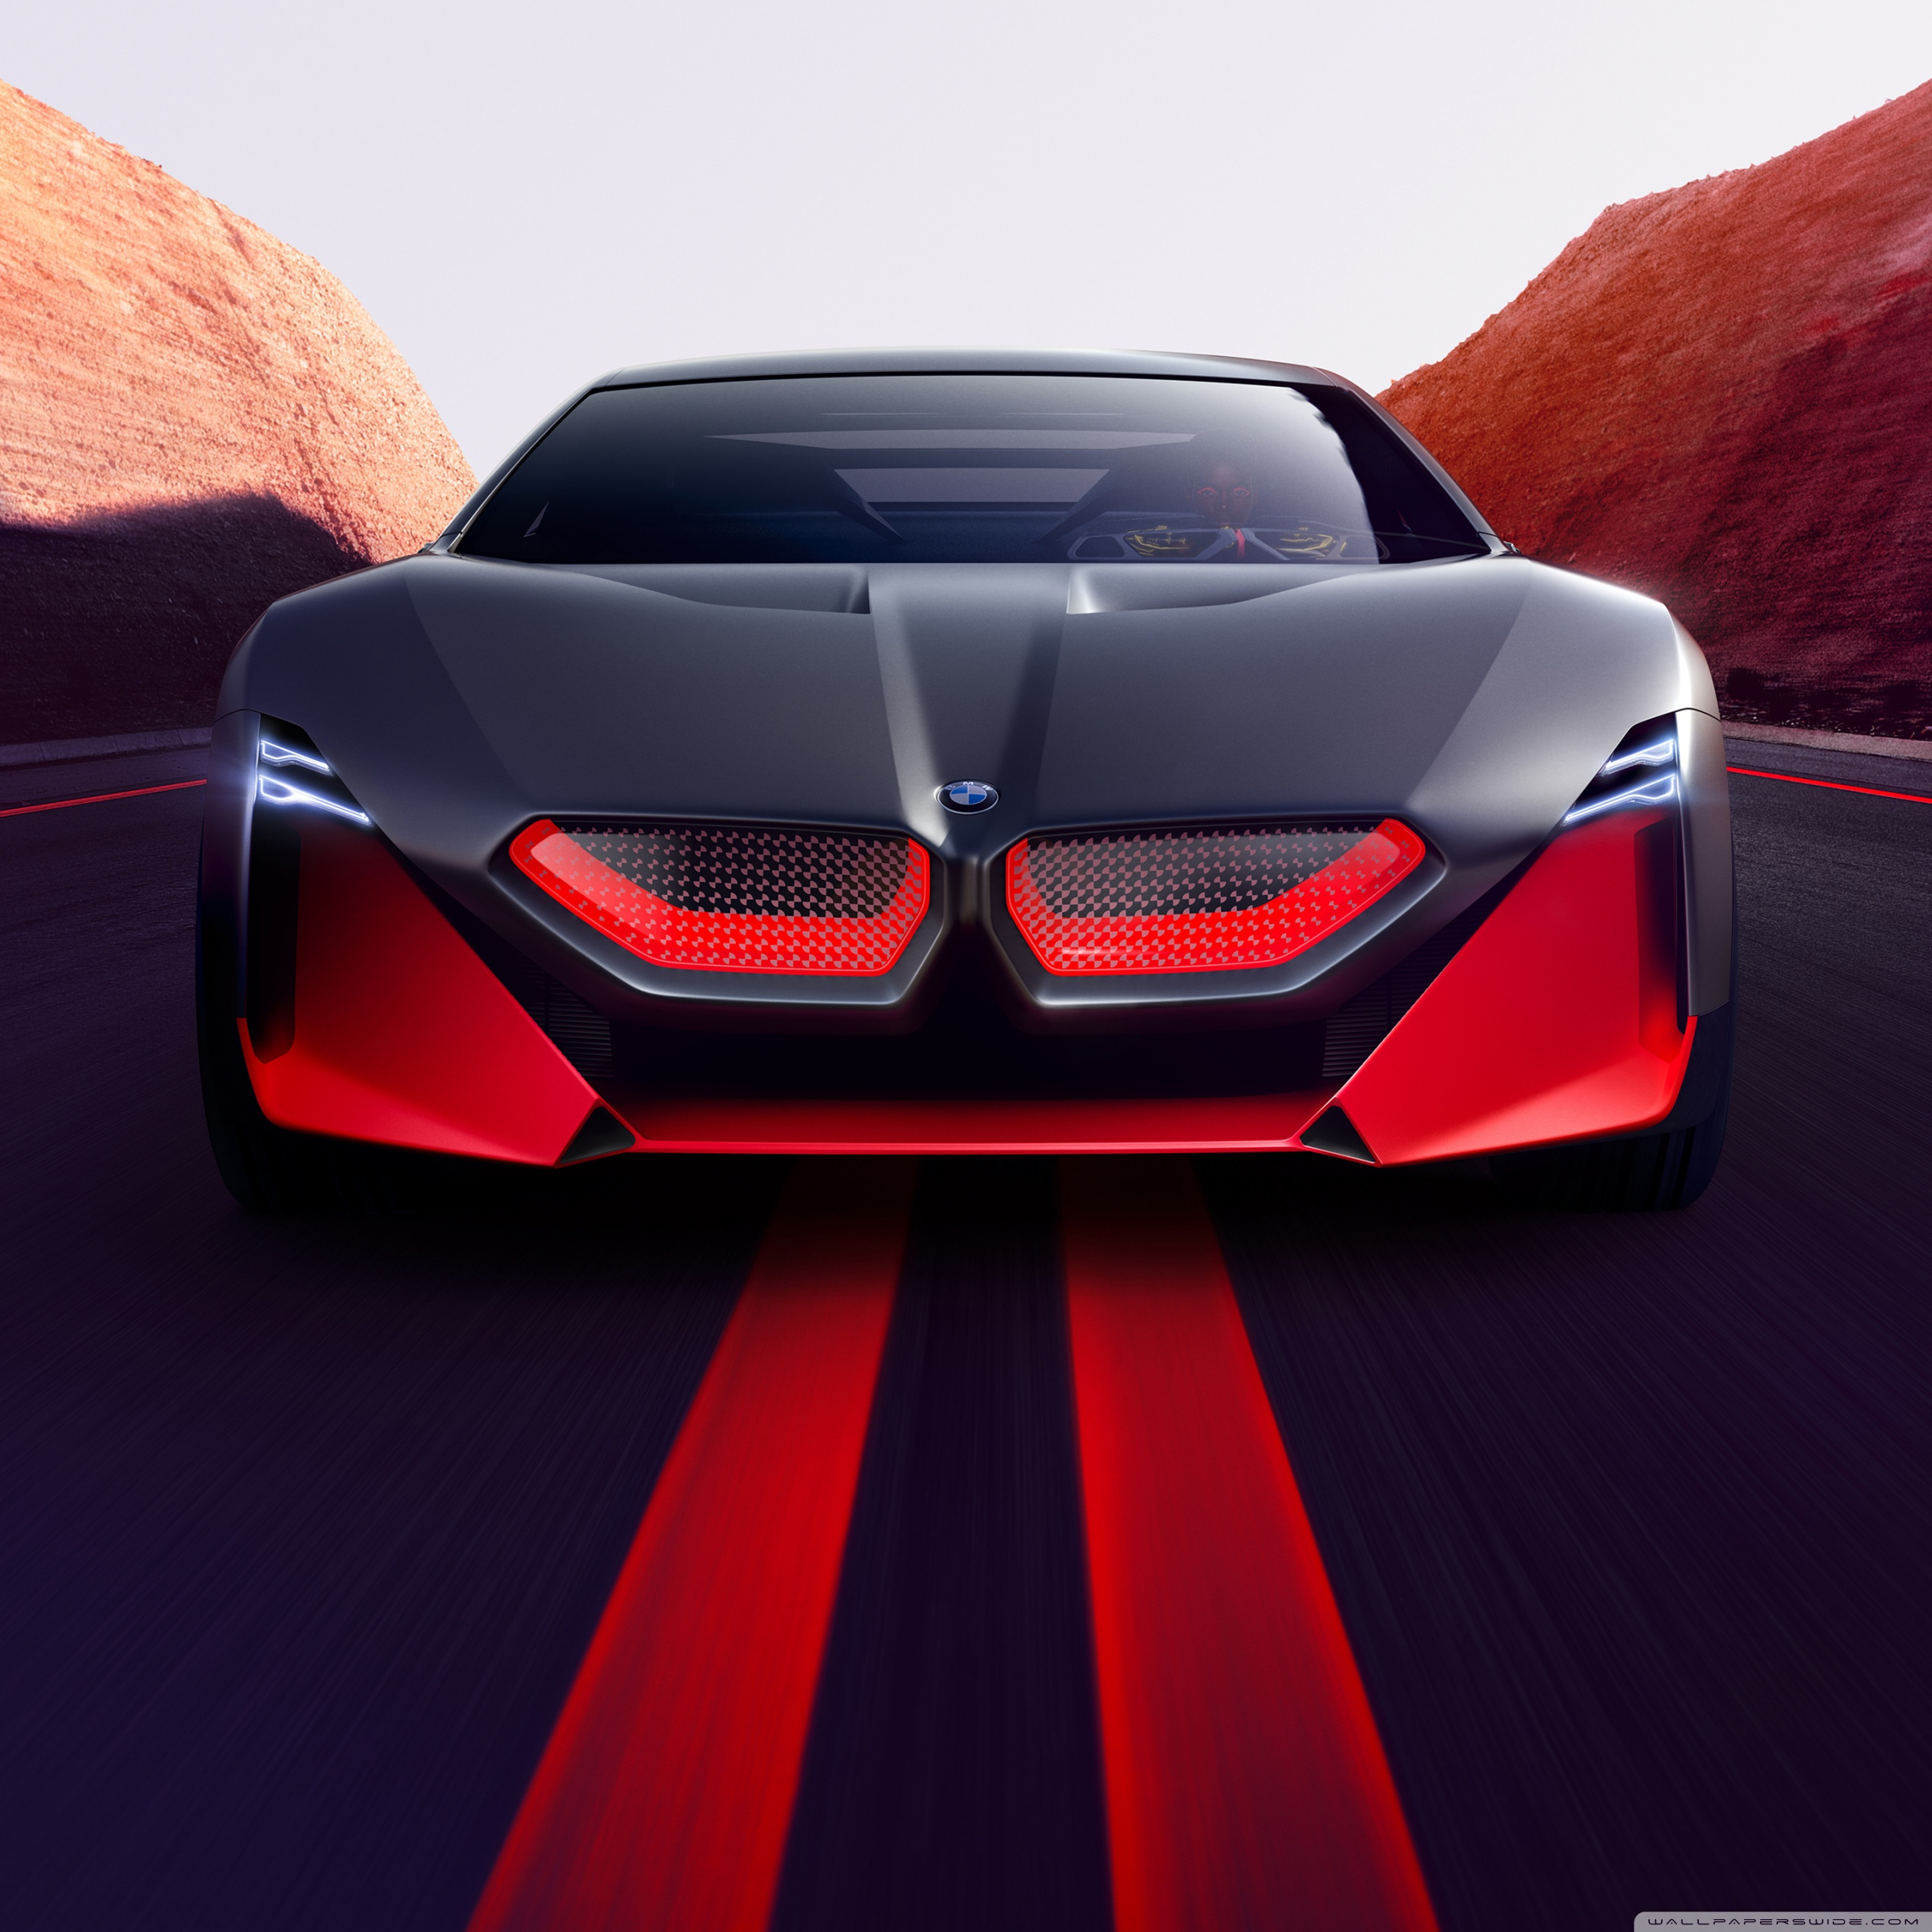 2019 Bmw Vision M Next Sports Car Road Ultra Hd Desktop Background Wallpaper For Widescreen Ultrawide Desktop Laptop Multi Display Dual Monitor Tablet Smartphone